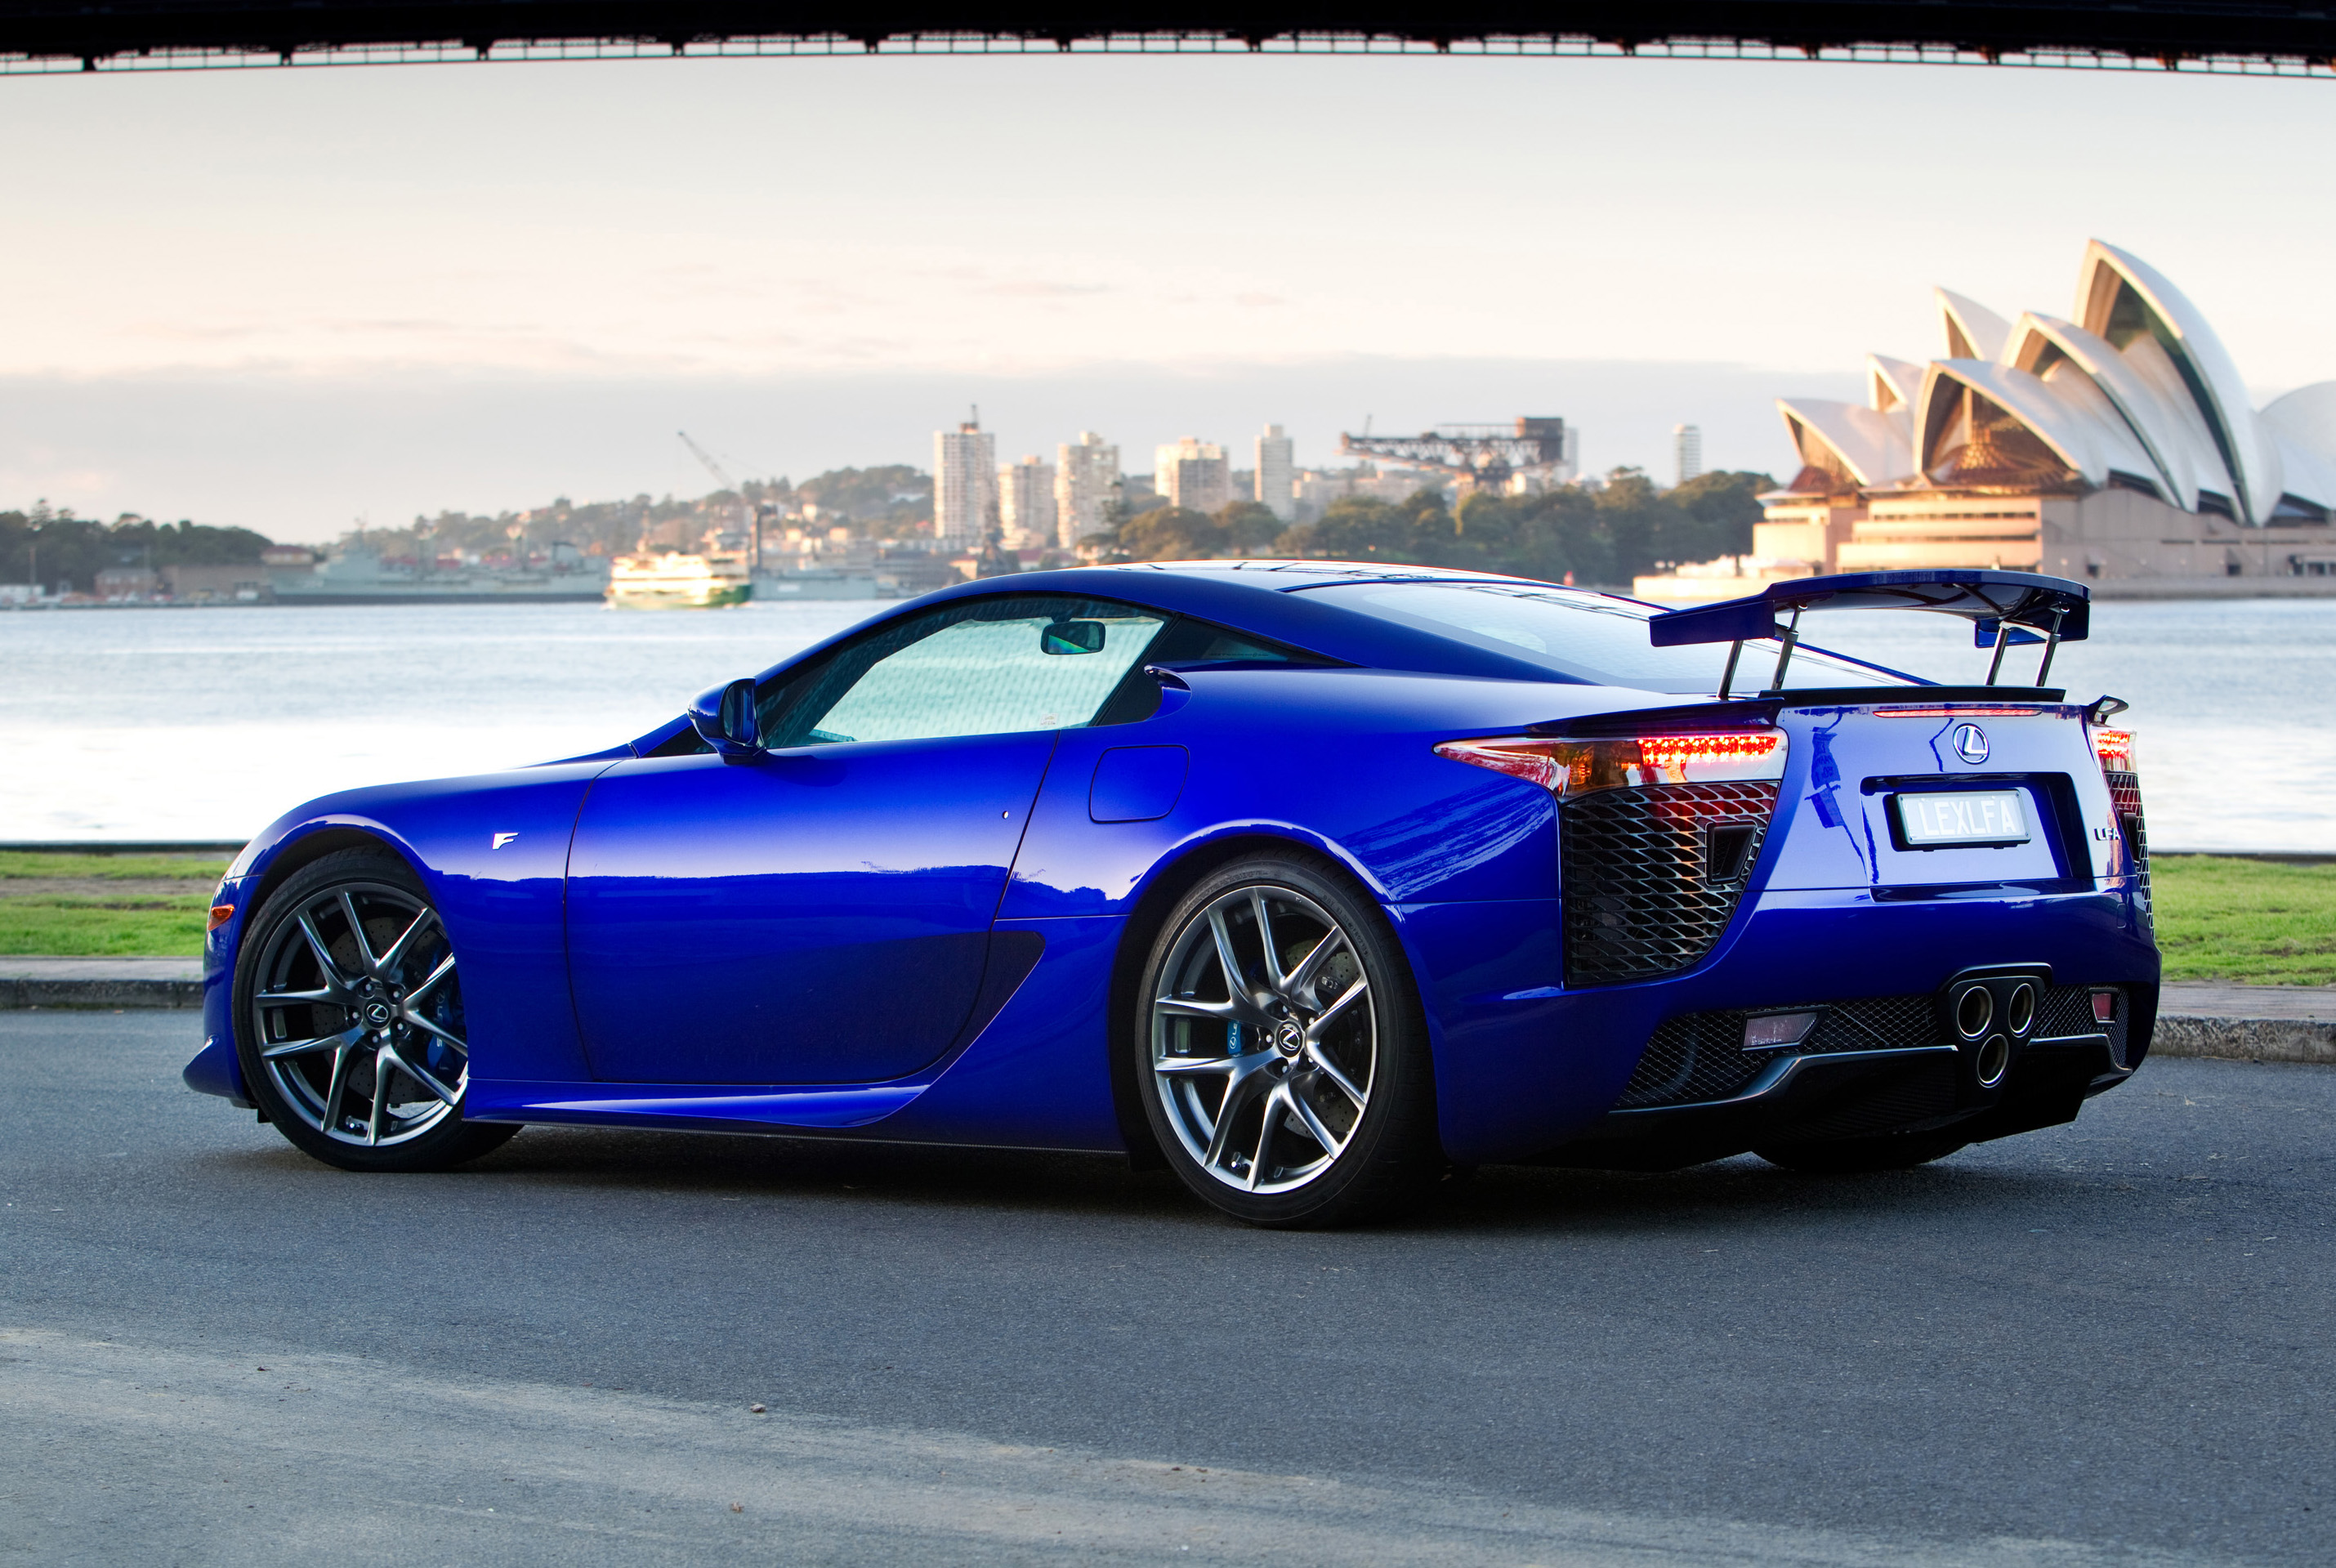 Lexus Lfa Interesting News With The Best Lexus Lfa Pictures On Motorinfo Org